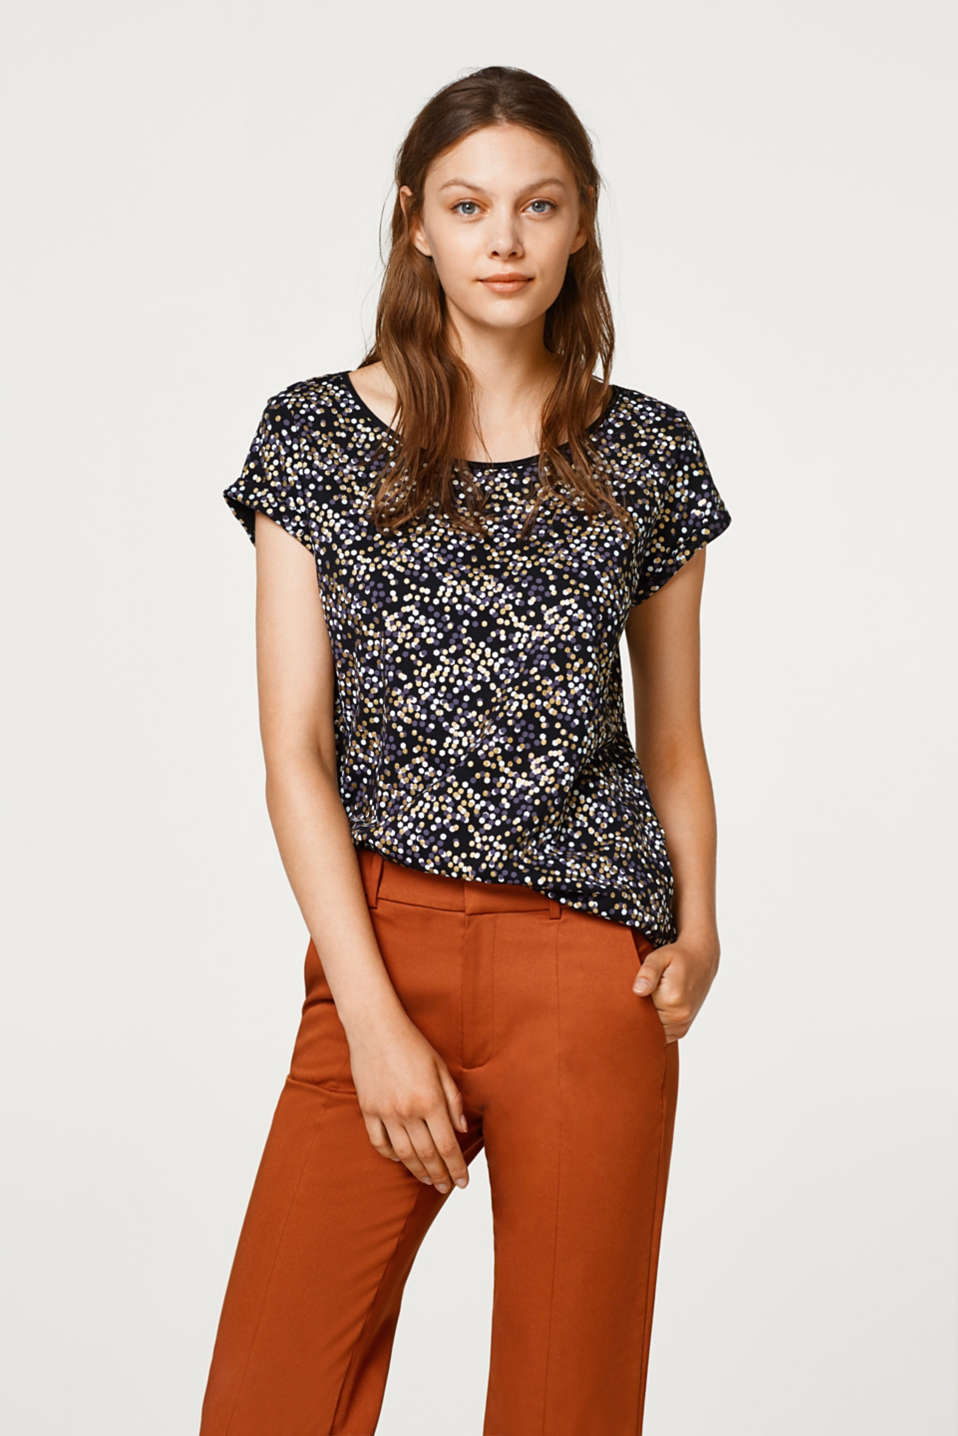 Esprit - Jersey top with a shiny print, 100% cotton